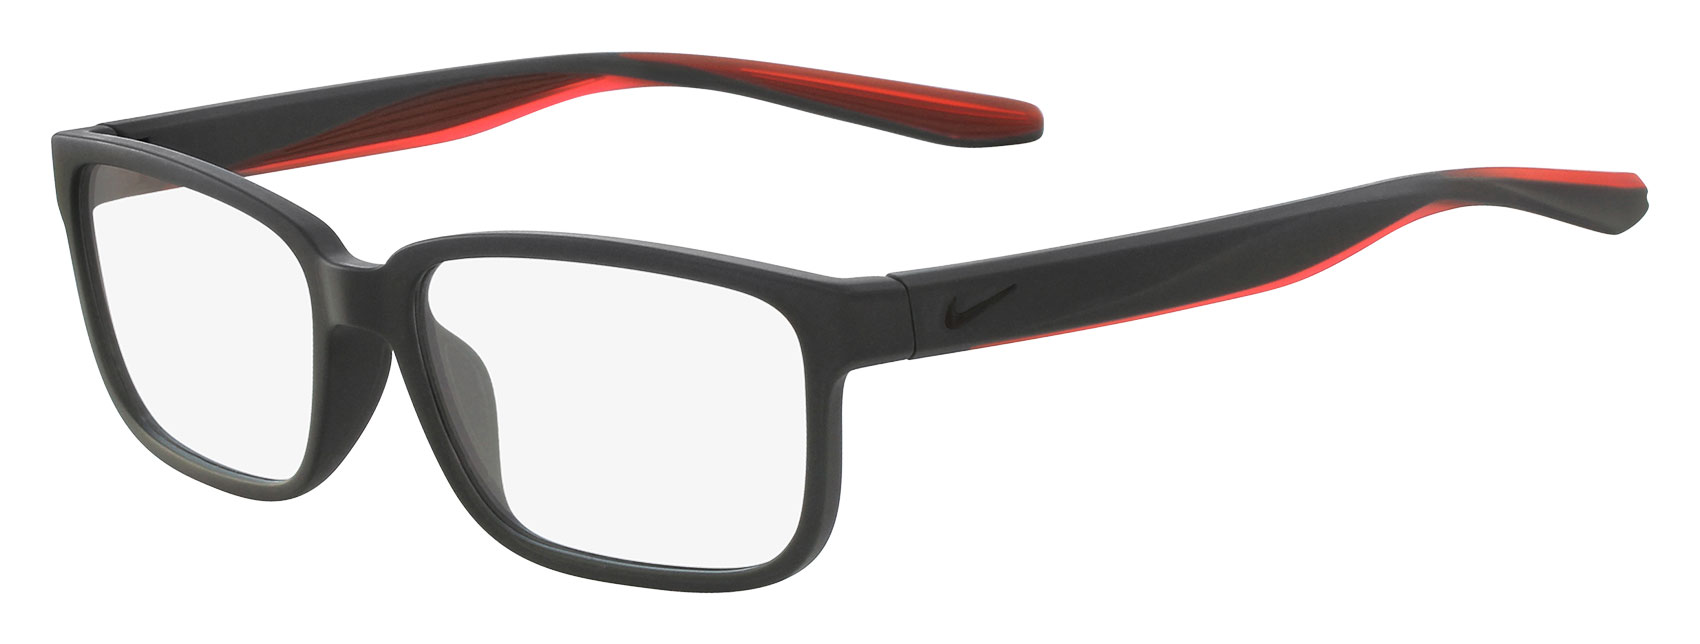 Nike 7102 Lead Glasses